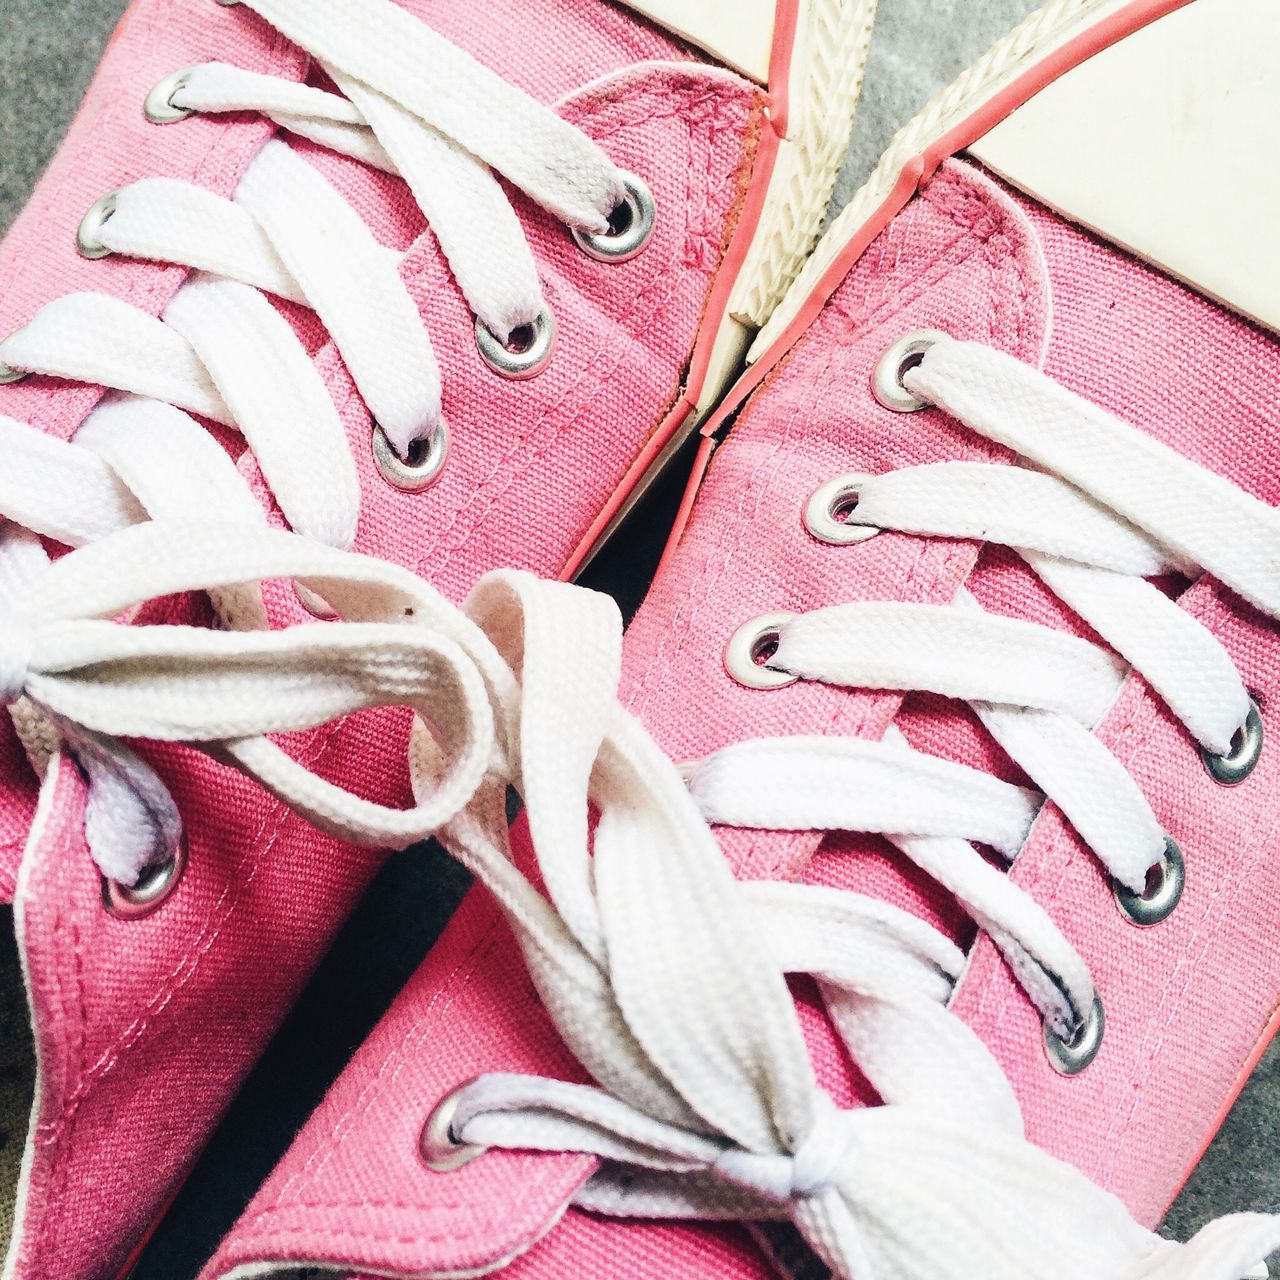 Pink sneakers Pink Sneakers Trainers Shoes Footwear White Laces Tied Laced Comfortable